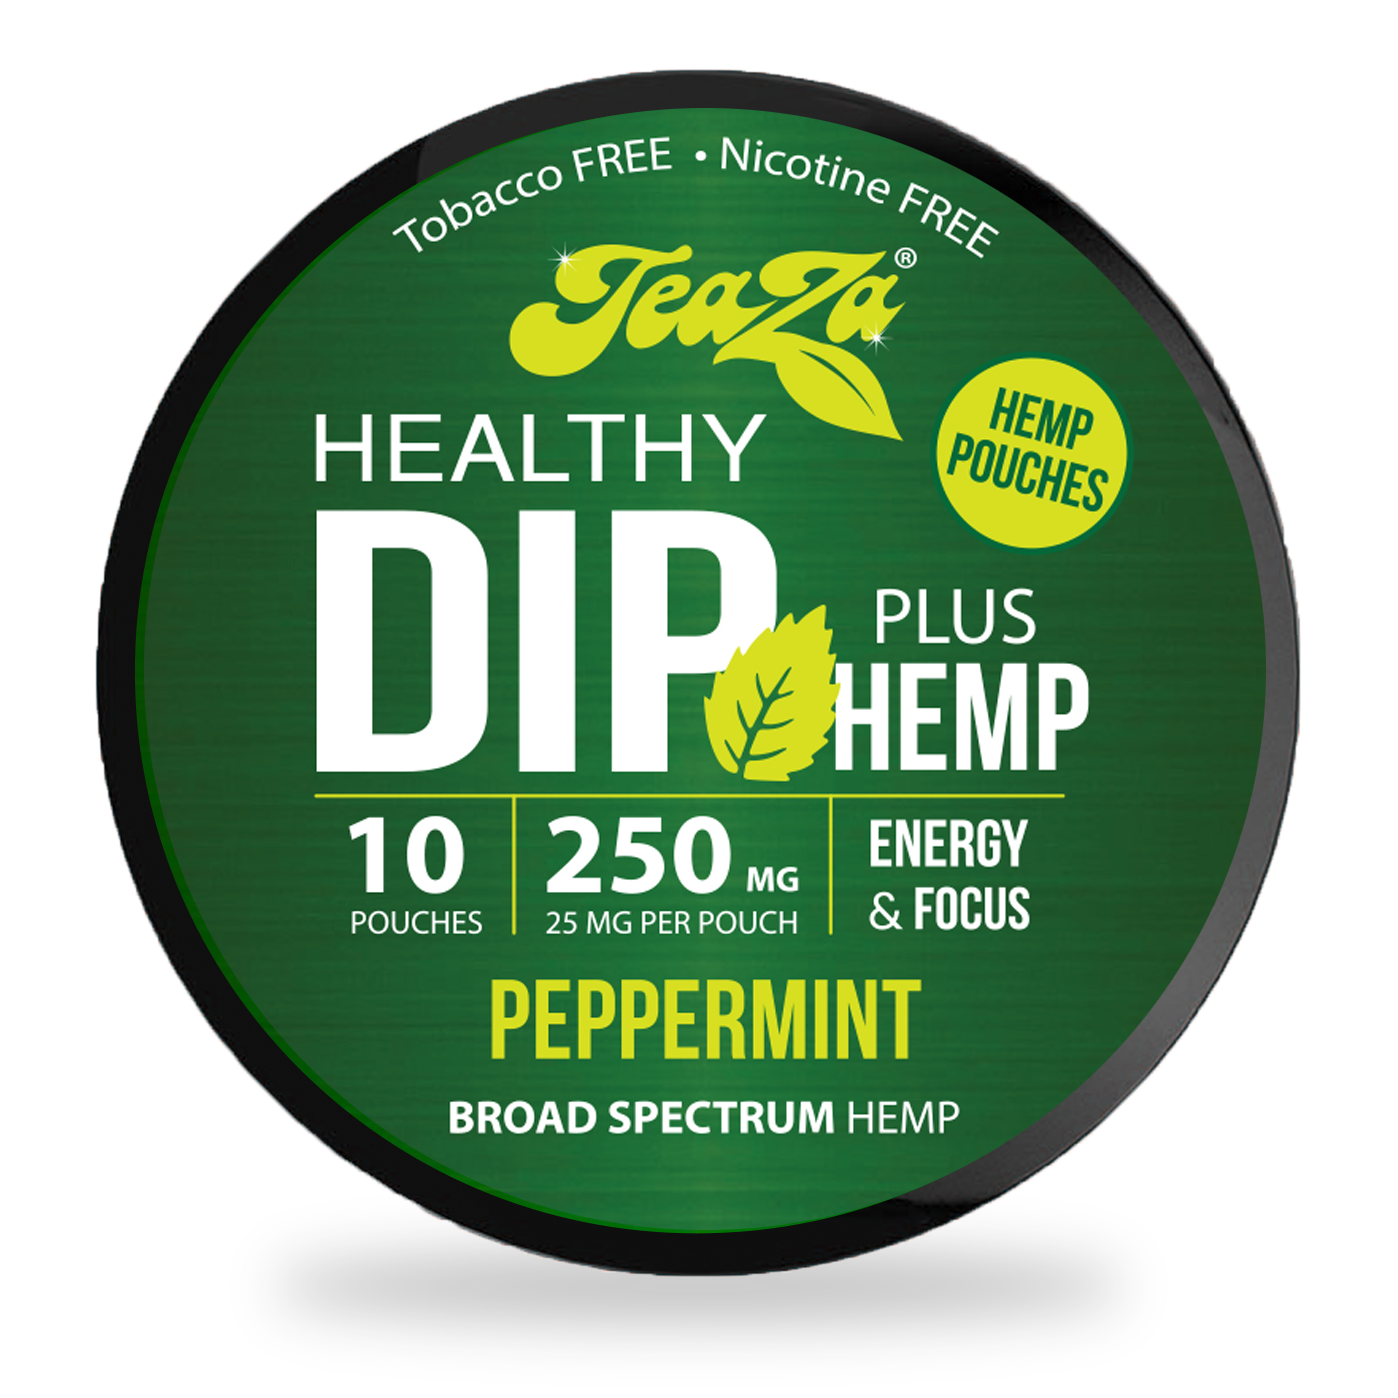 Peppermint TeaZa Hemp Dip Pouches